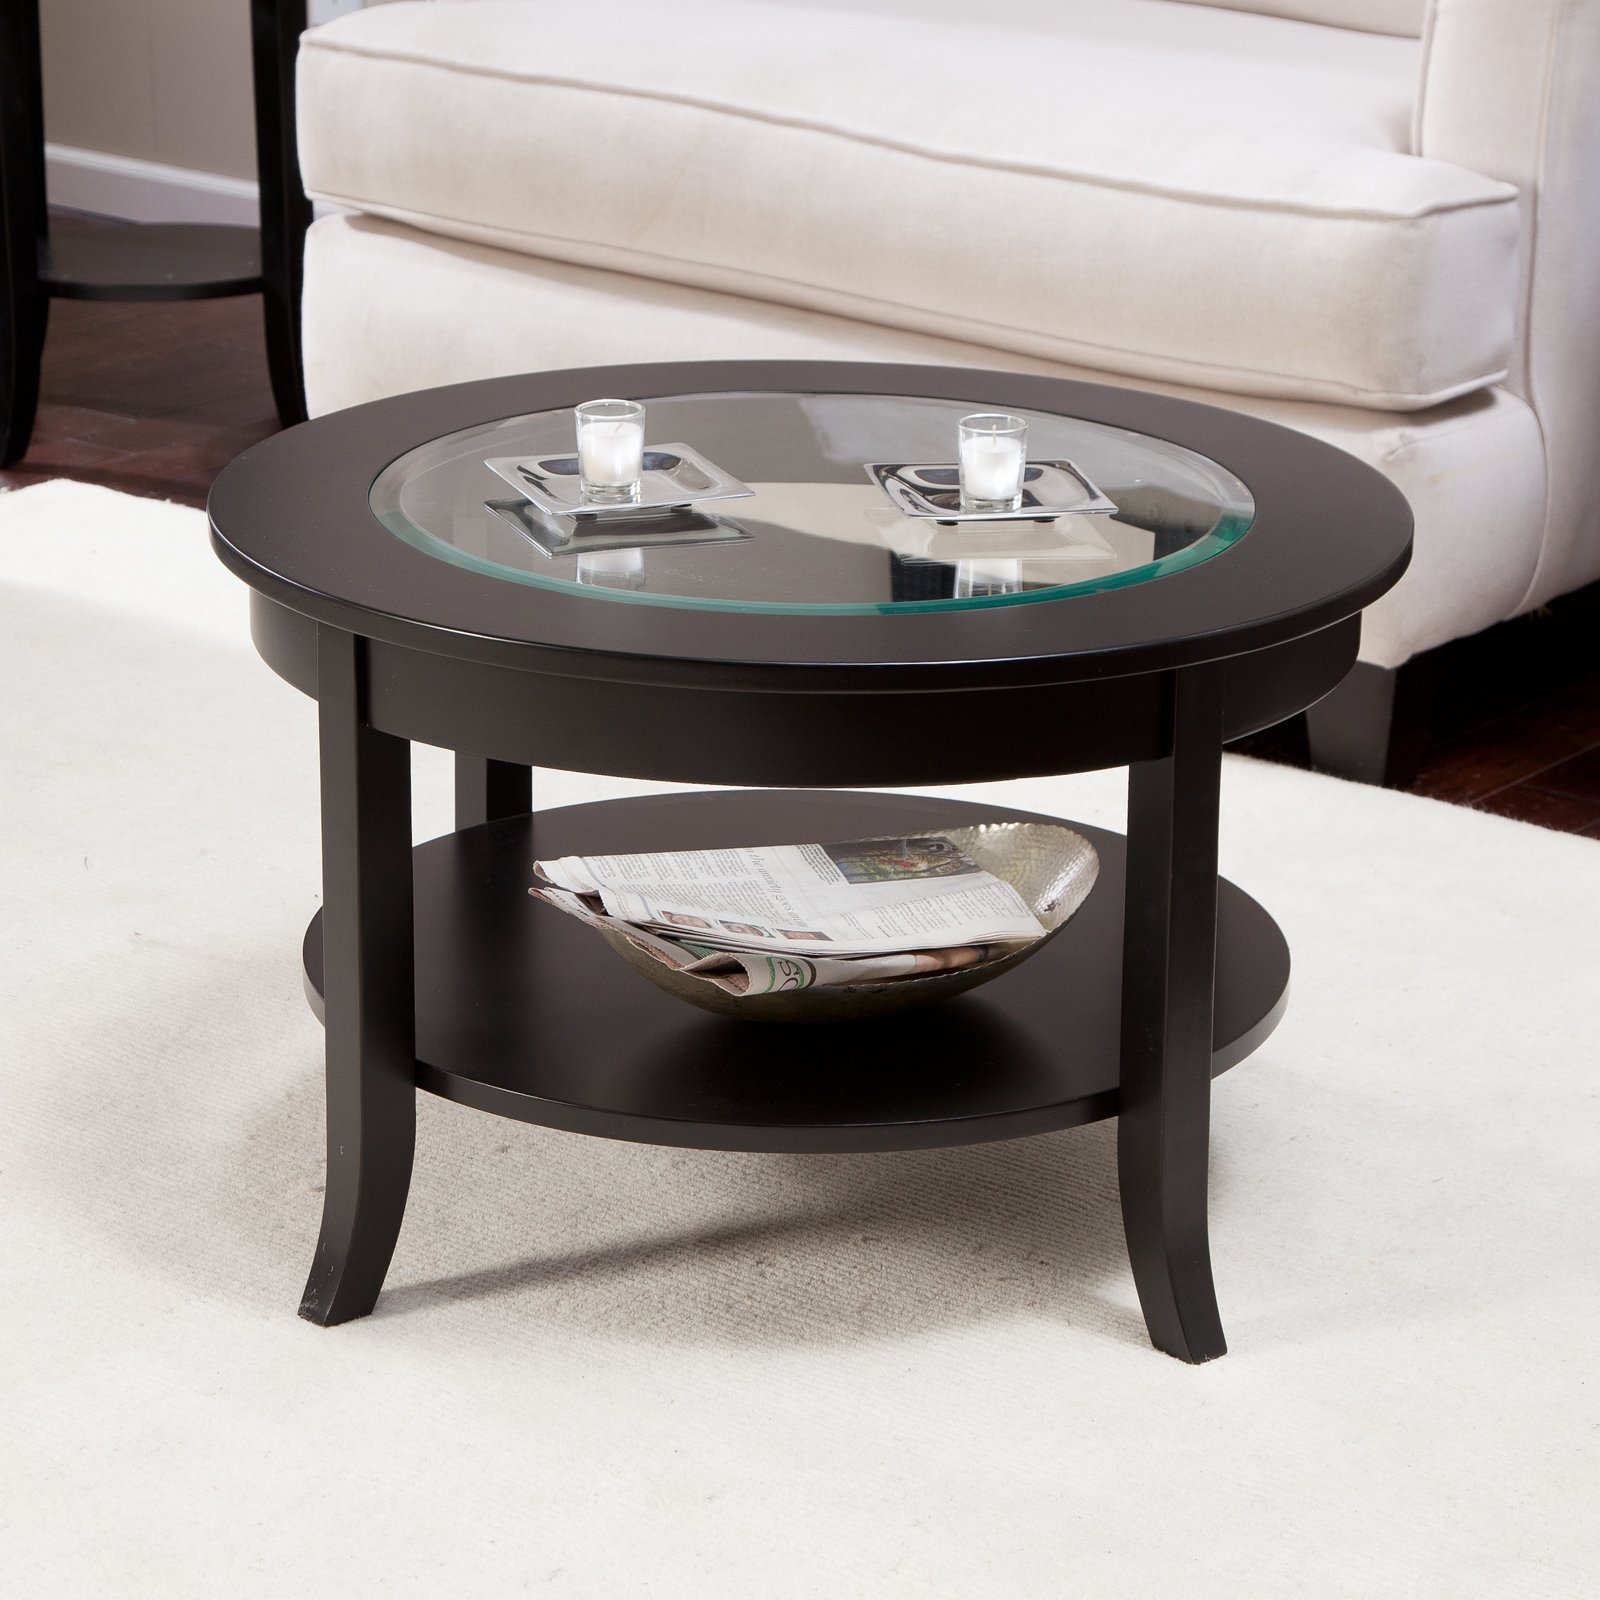 Small Round Coffee Tables Combine With Glass Small Round Coffee Tables Small Round Glass Coffee Table (View 7 of 10)